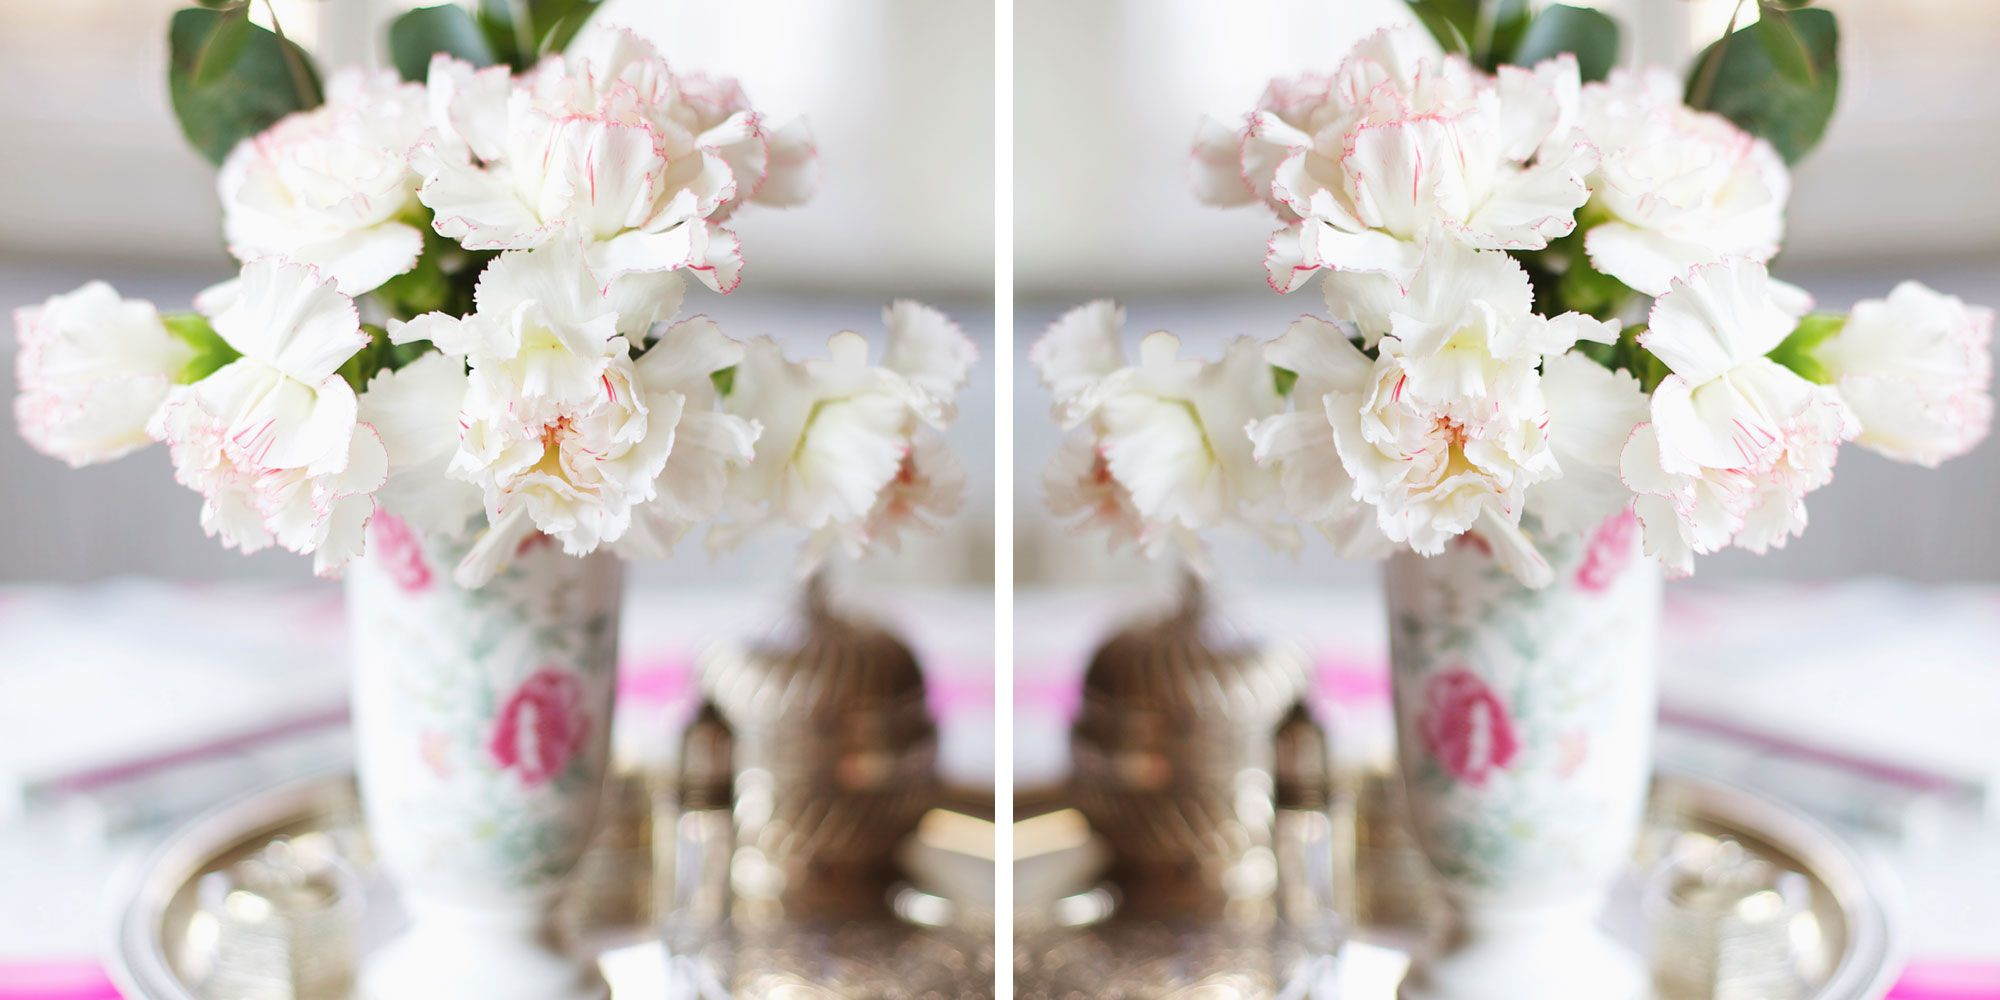 6 Secrets To Making Your Place Smell Amazing All The Time